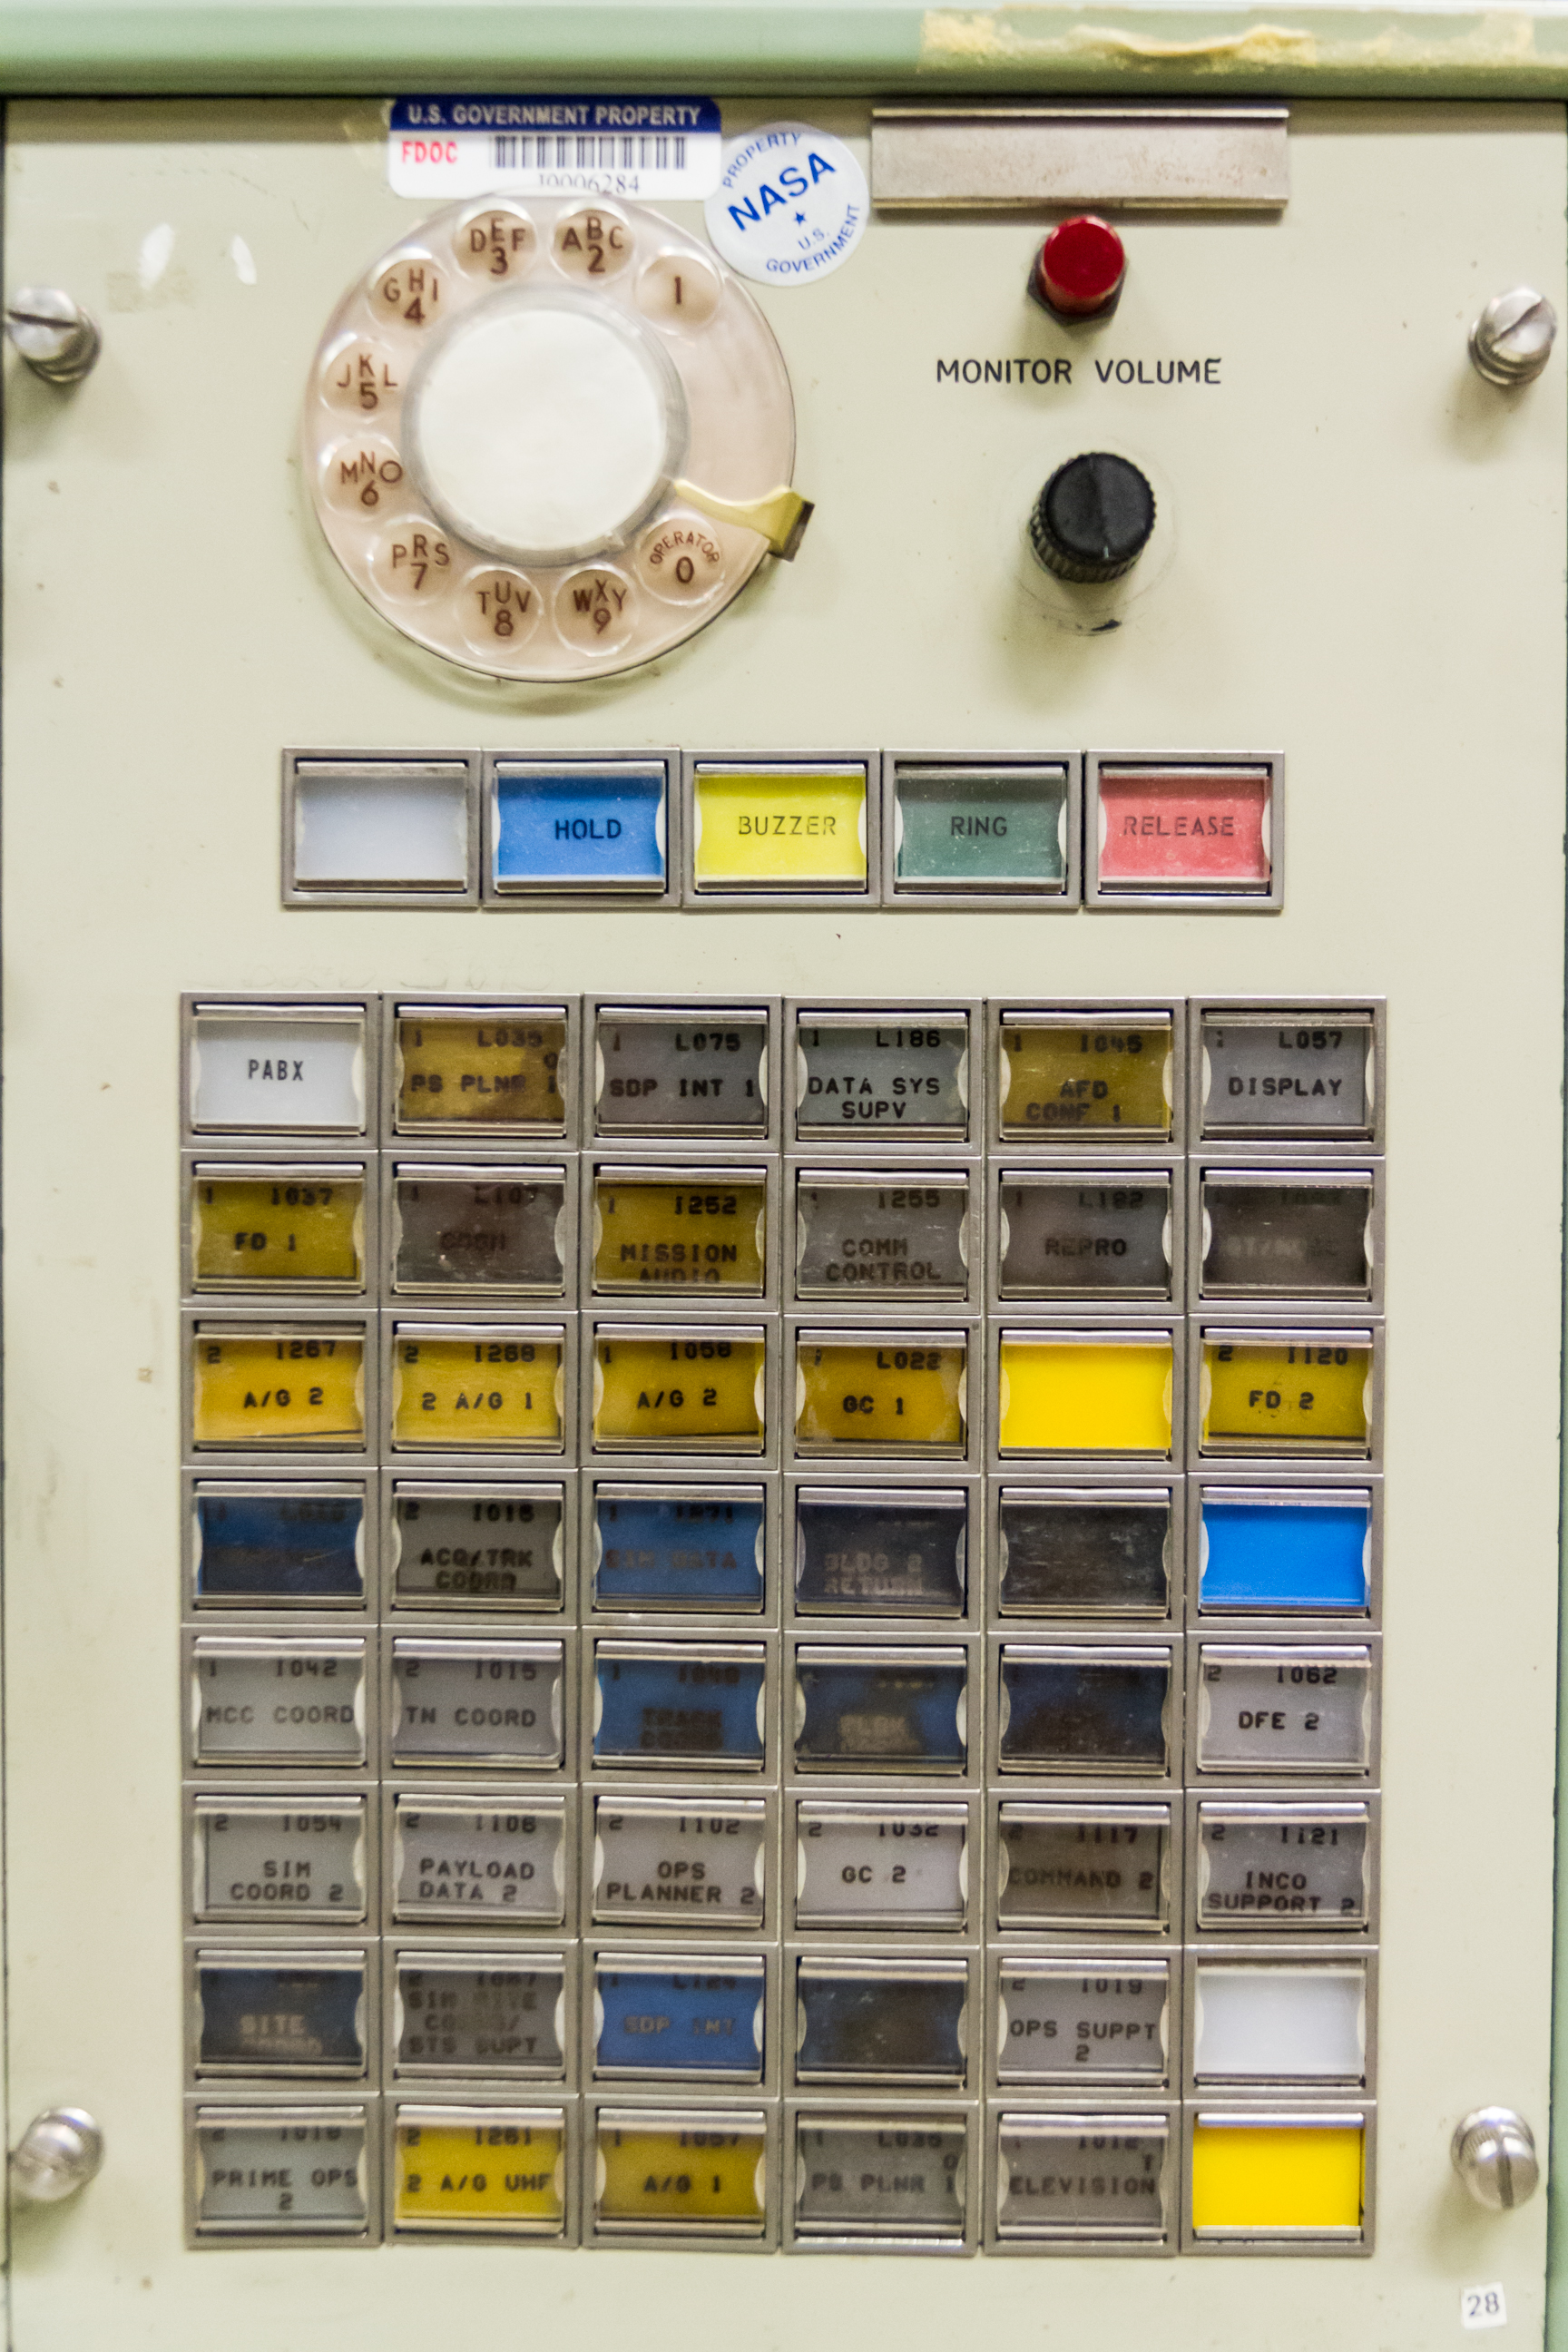 A typical PABX (Private Automatic Branch Exchange) communications panel. The labeling and layout on this panel is from the Shuttle era. Different buttons in the main control represent different communications loops or outside phone lines which could be monitored or spoken on.